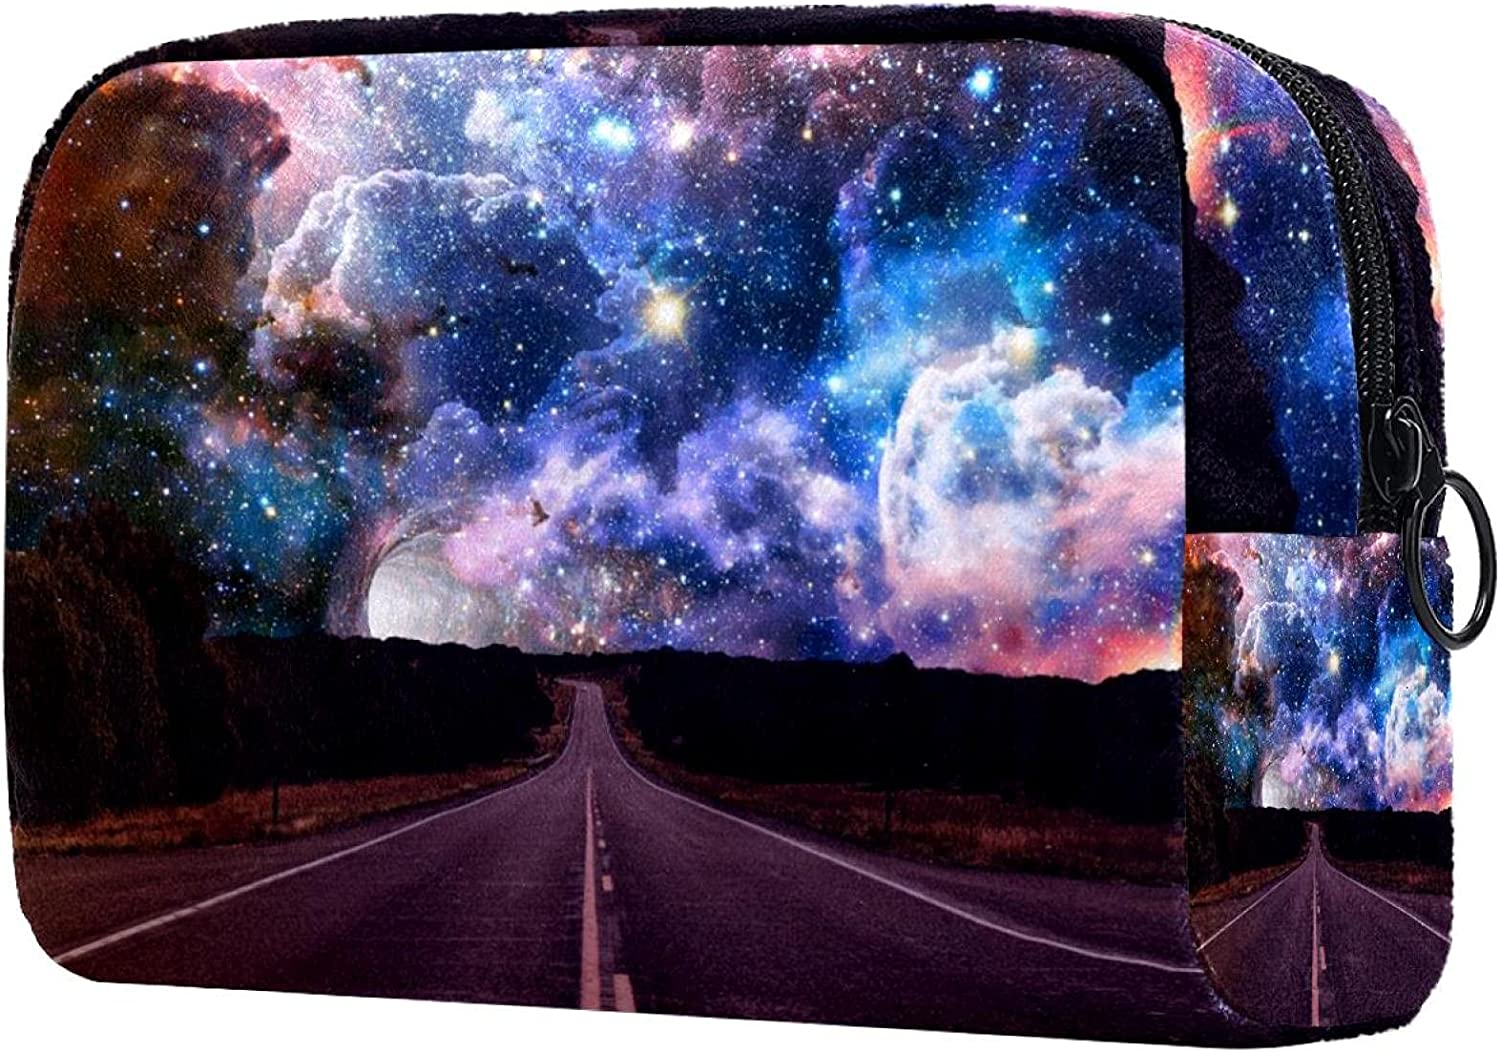 Makeup Bag Limited price sale Coin purse road Opening large release sale and galaxy Cosmetic